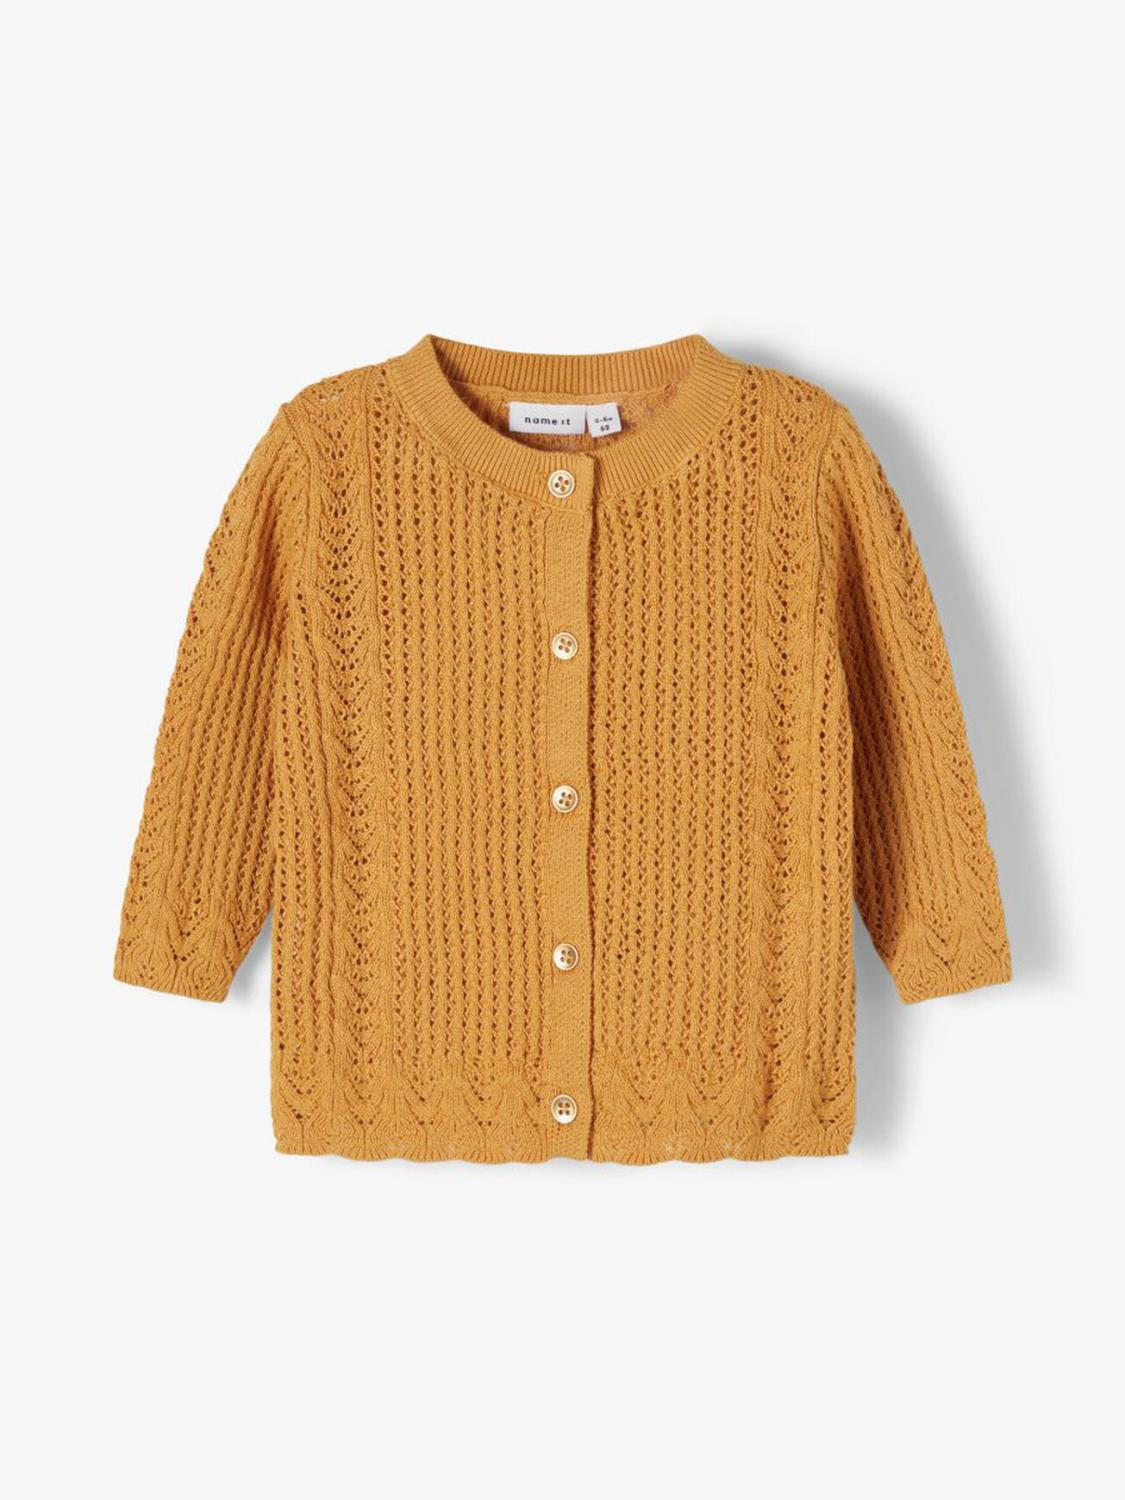 FILONE KNIT CARDIGAN SPRUCE YELLOW - NAME IT